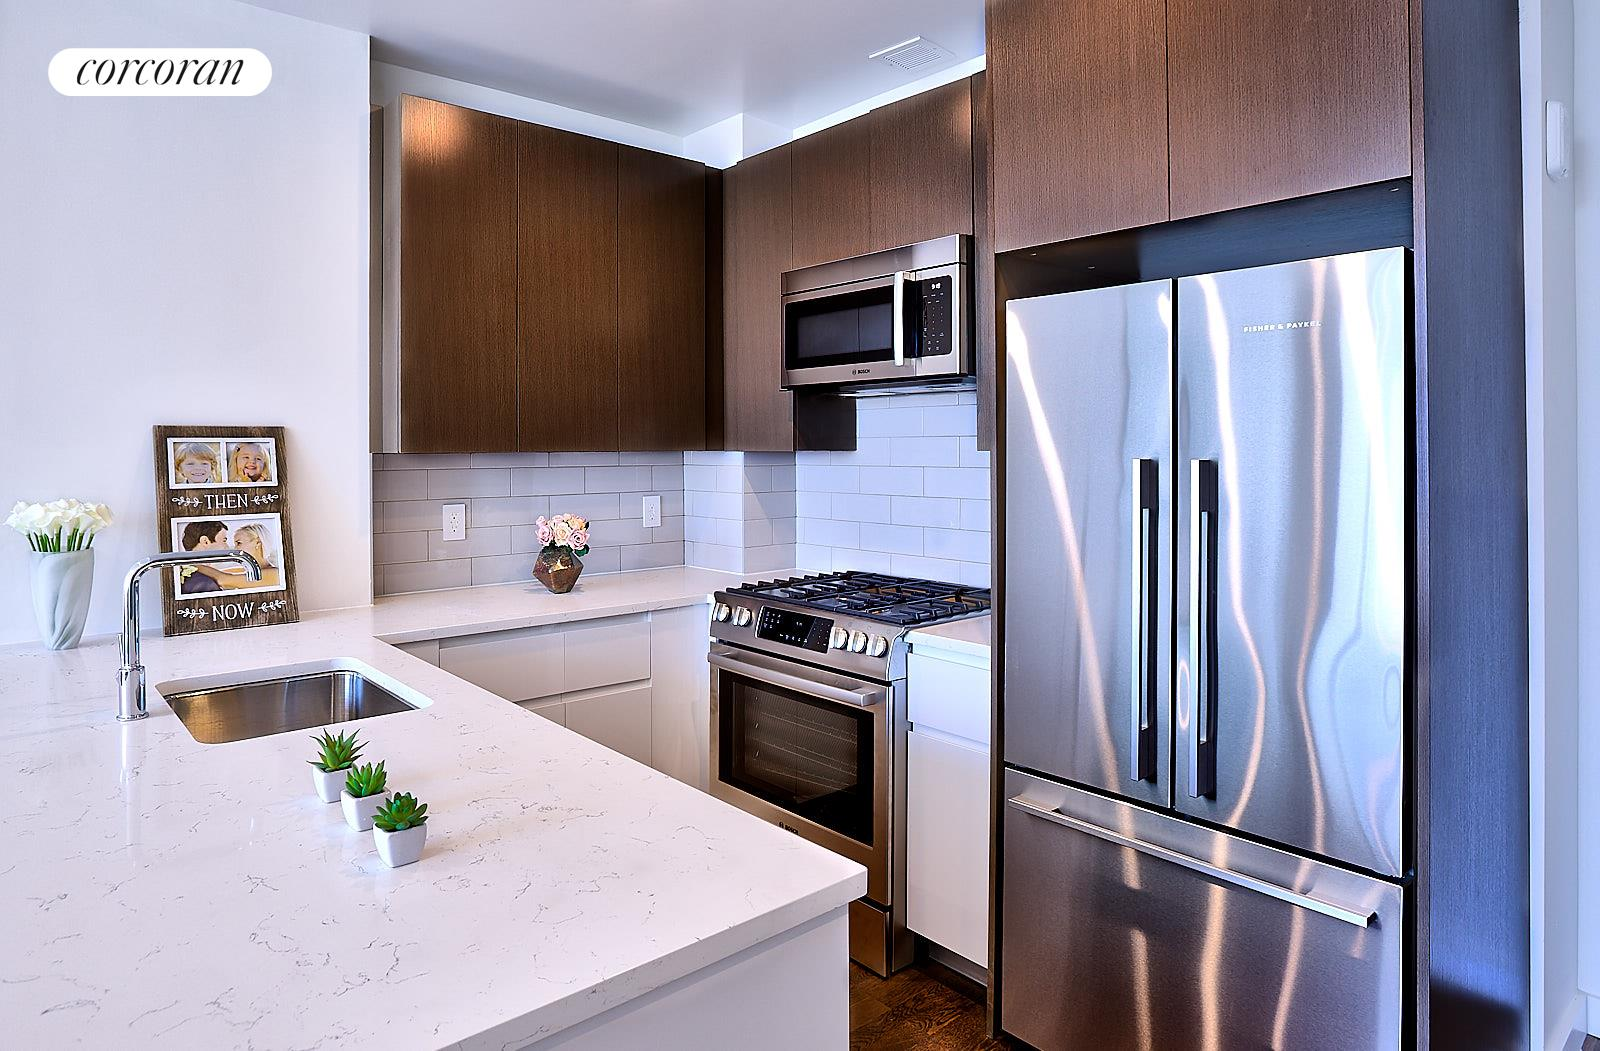 Apartment for sale at 27-17 42nd Road, Apt 17G